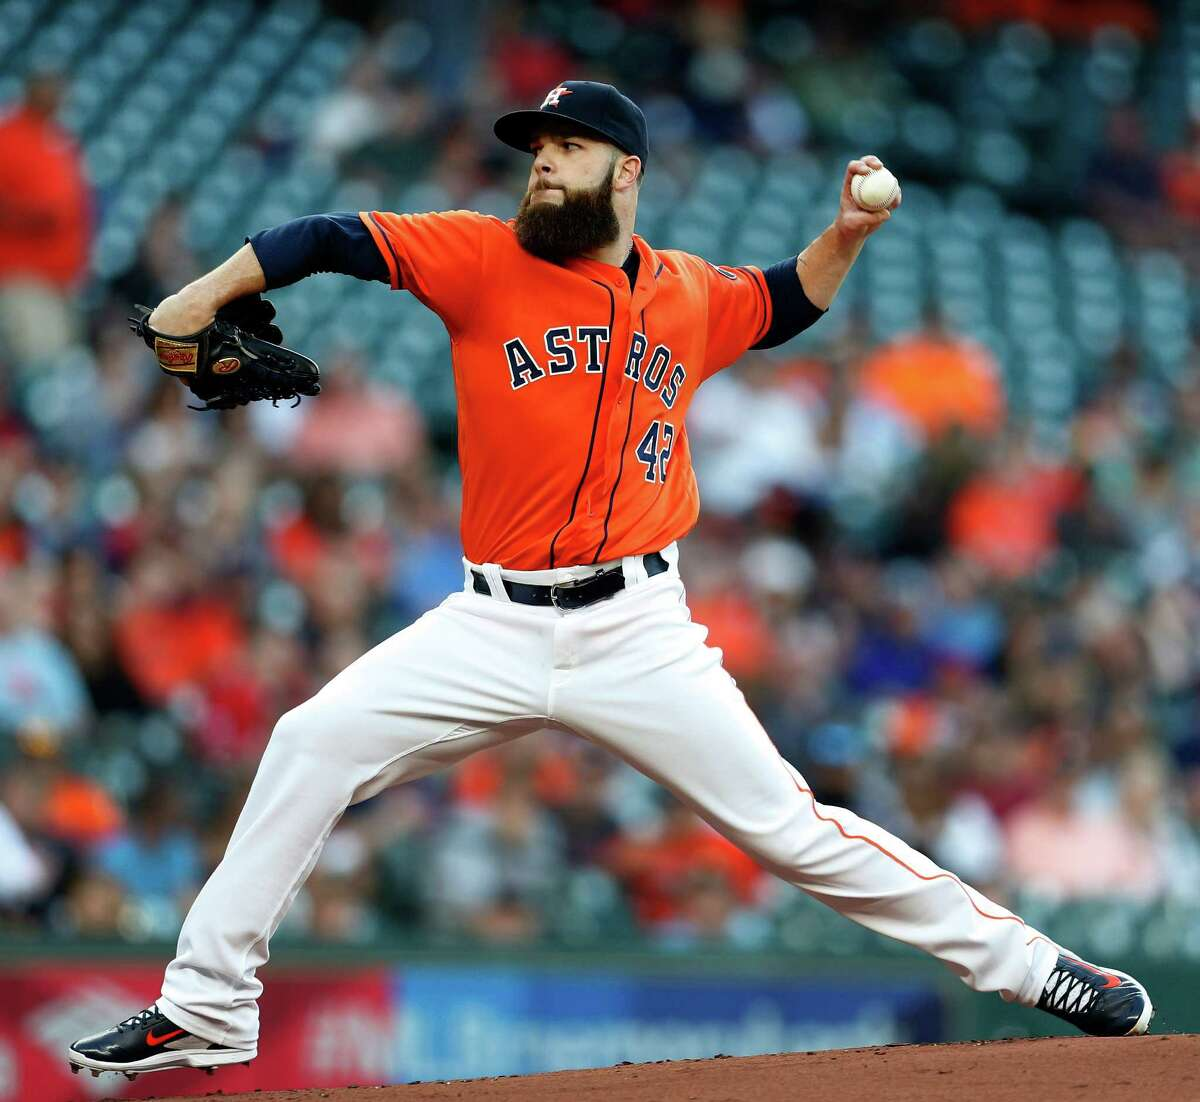 Dallas Keuchel Last season's American League Cy Young Award winner is the bona fide ace in a starting rotation thatalreadyhas shown the inability to string multiple quality outings together. Keuchel hasn't lost a start at Minute Maid Park since Aug. 20, 2014, and tossed eight shutout innings Friday to beat the Tigers.